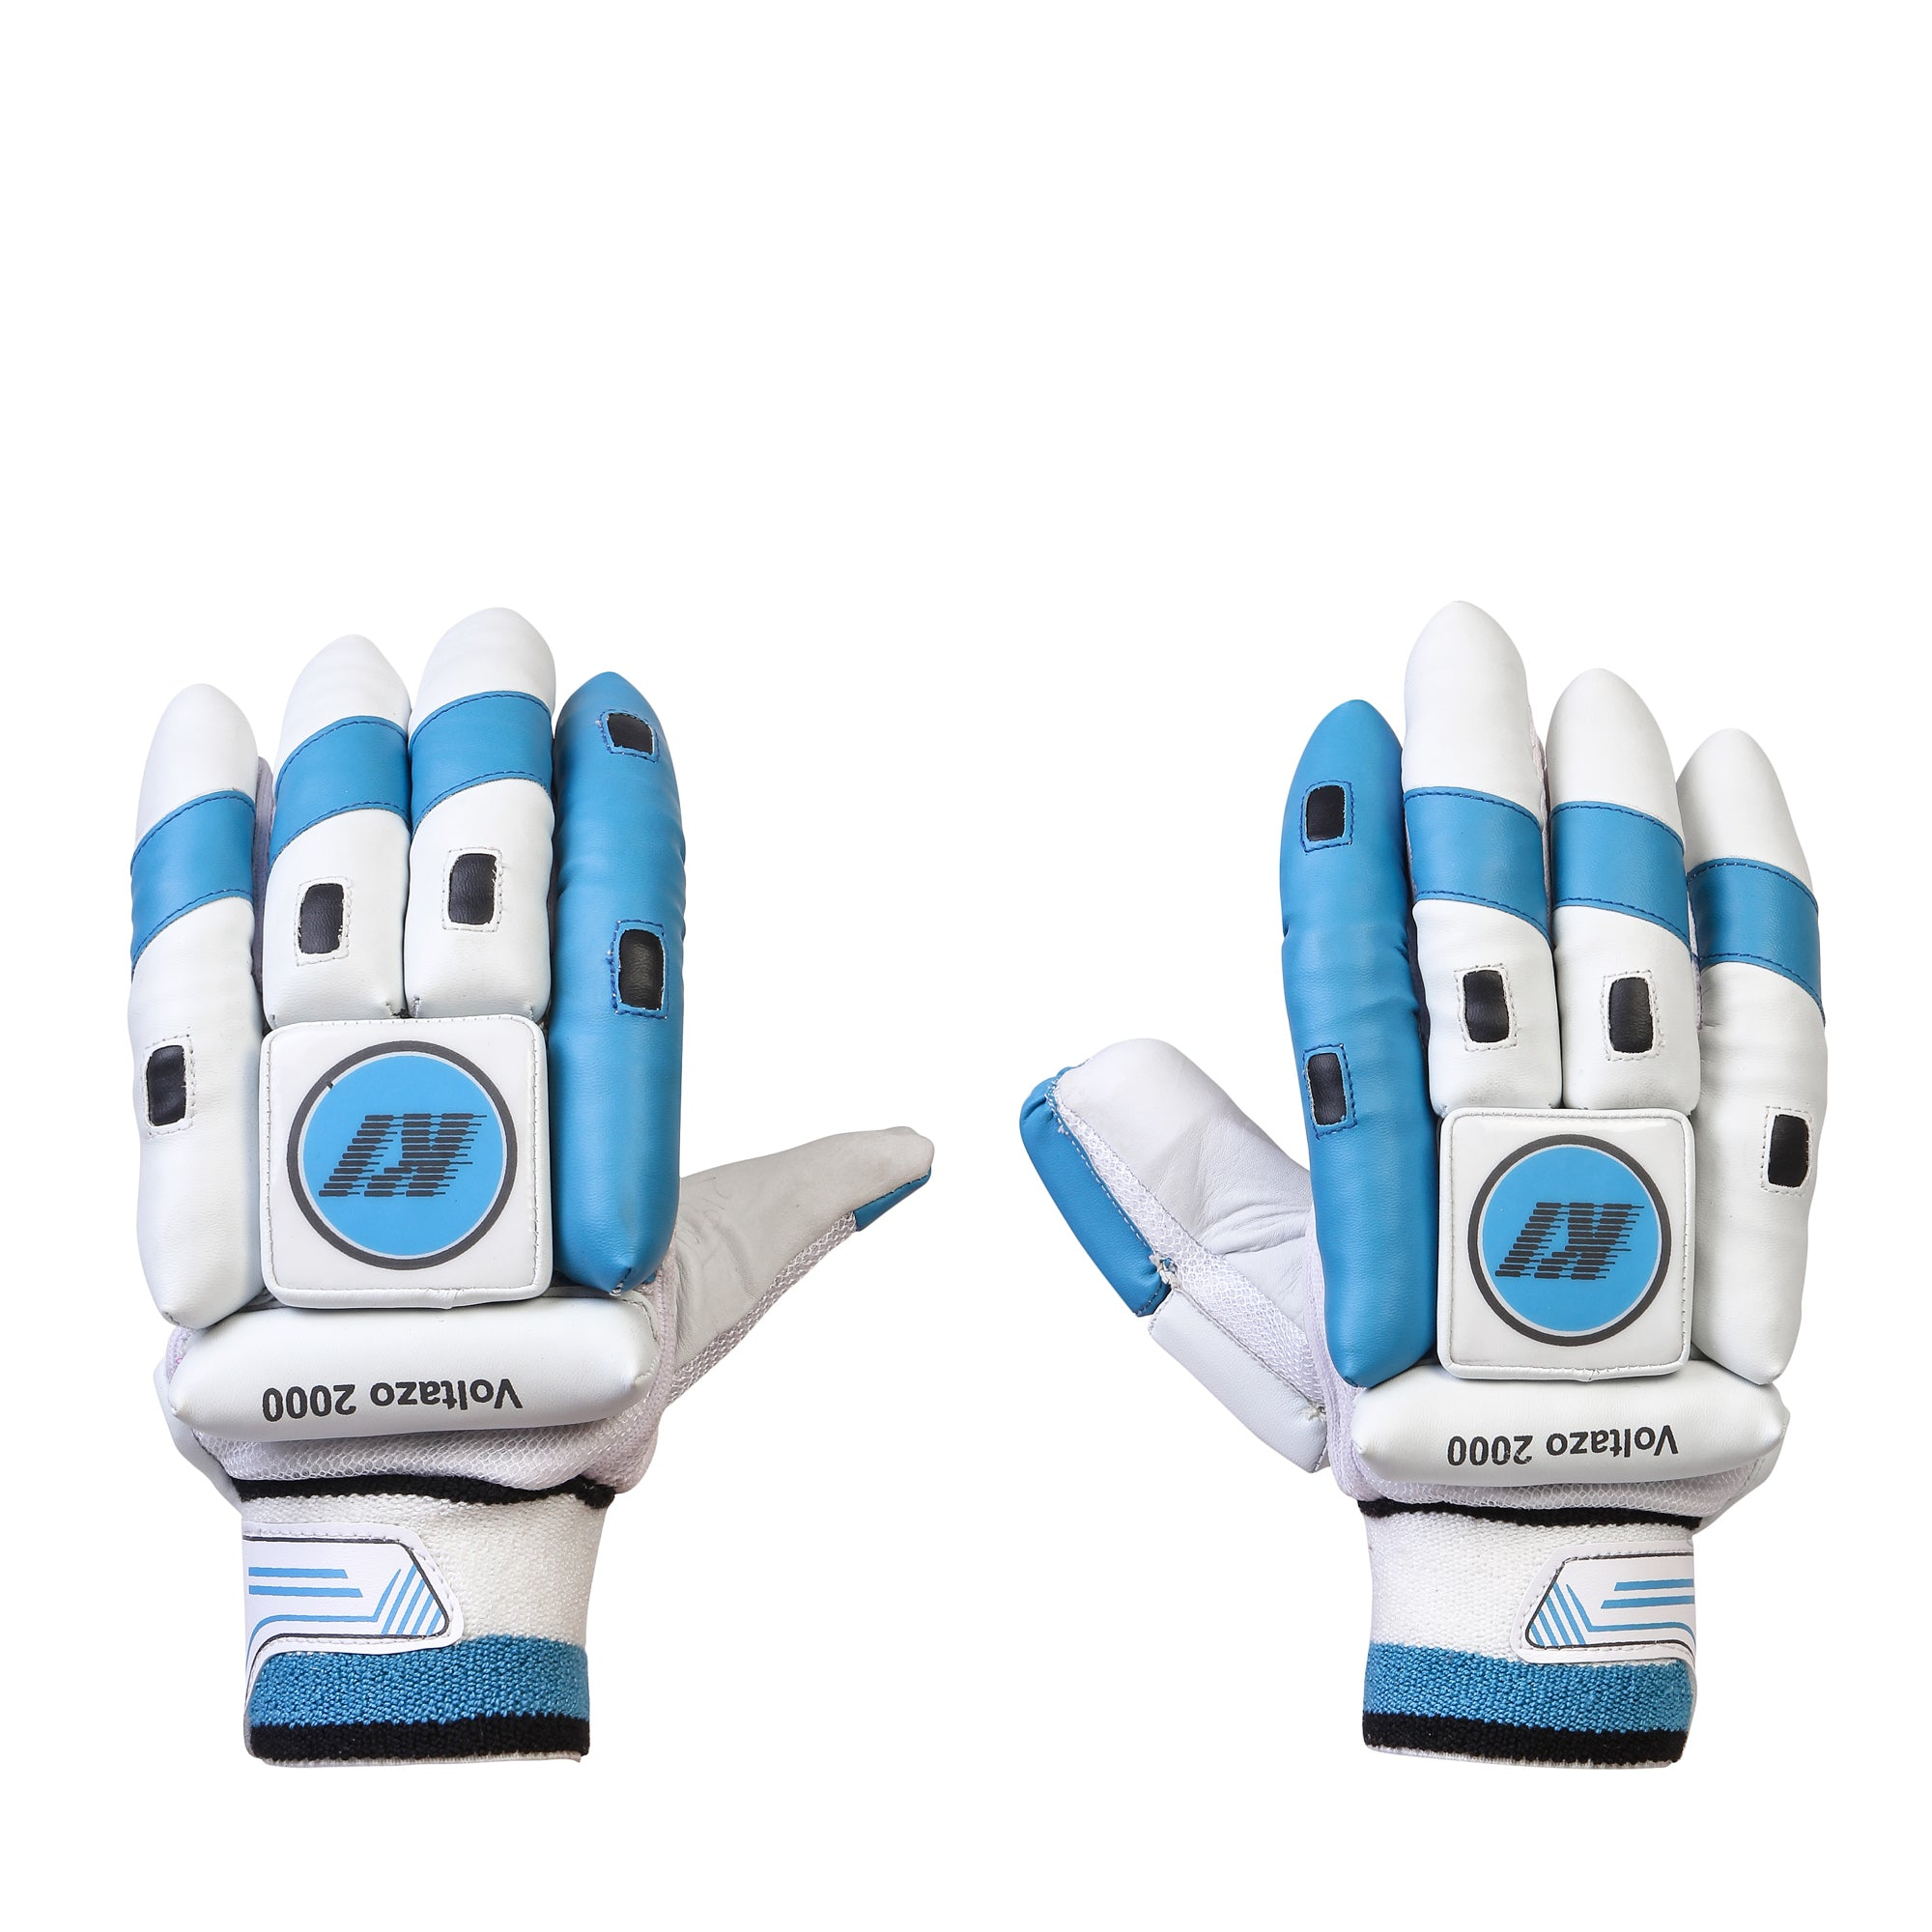 Voltazo 2000-Batting Gloves